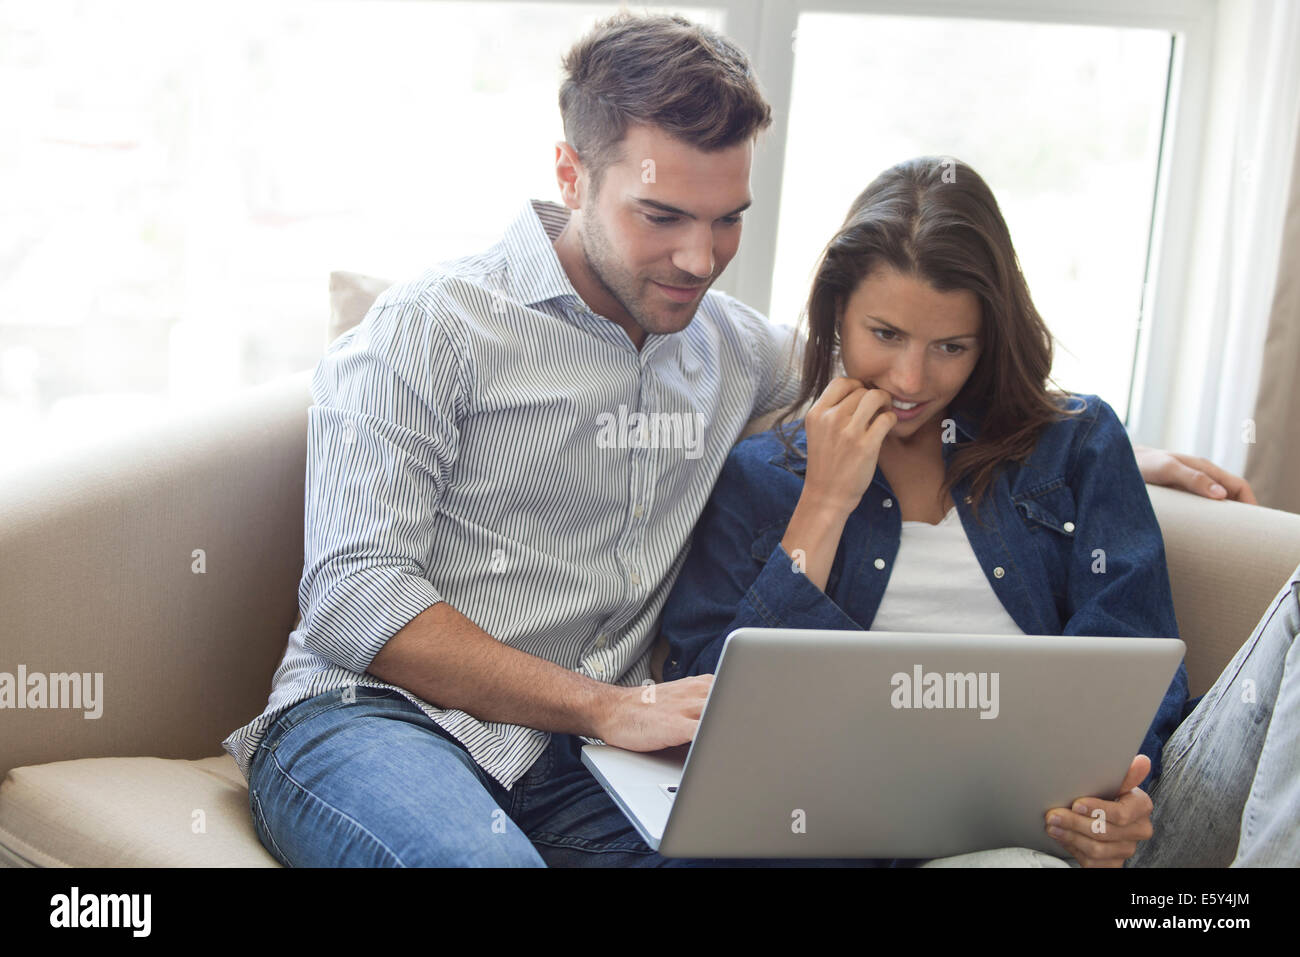 Couple using laptop computer together at home - Stock Image